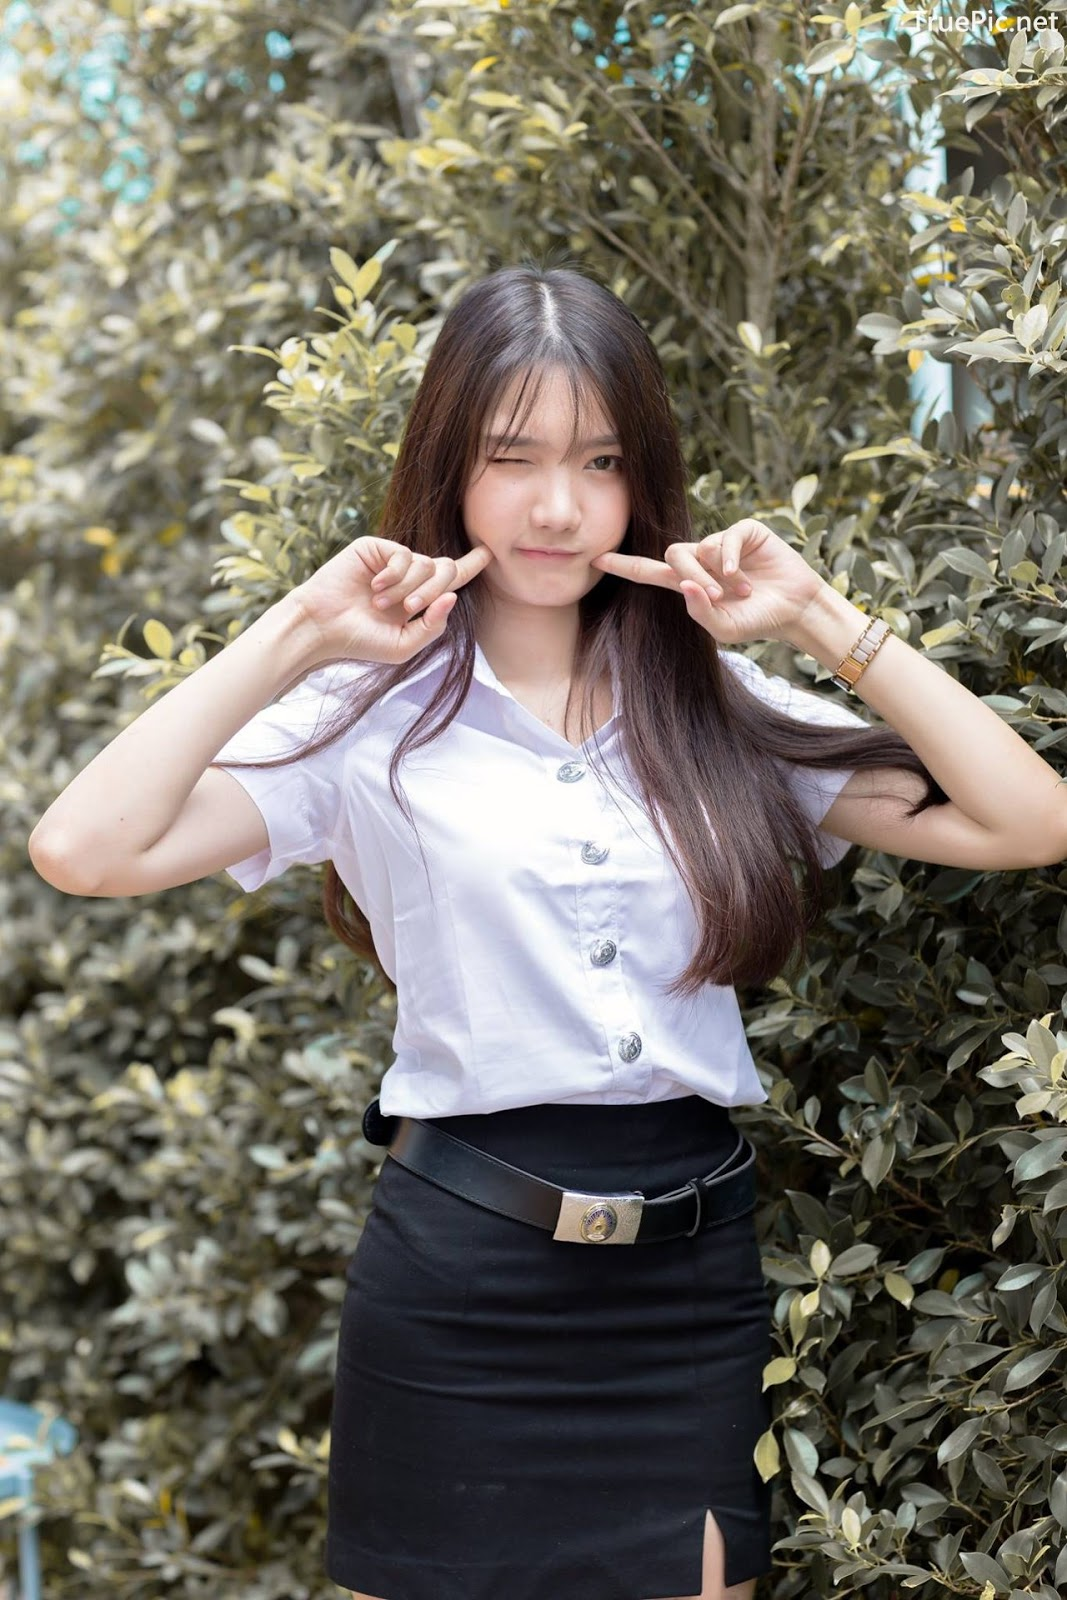 Image-Thailand-Cute-Model-Creammy-Chanama-Concept-Innocent-Student-Girl-TruePic.net- Picture-8